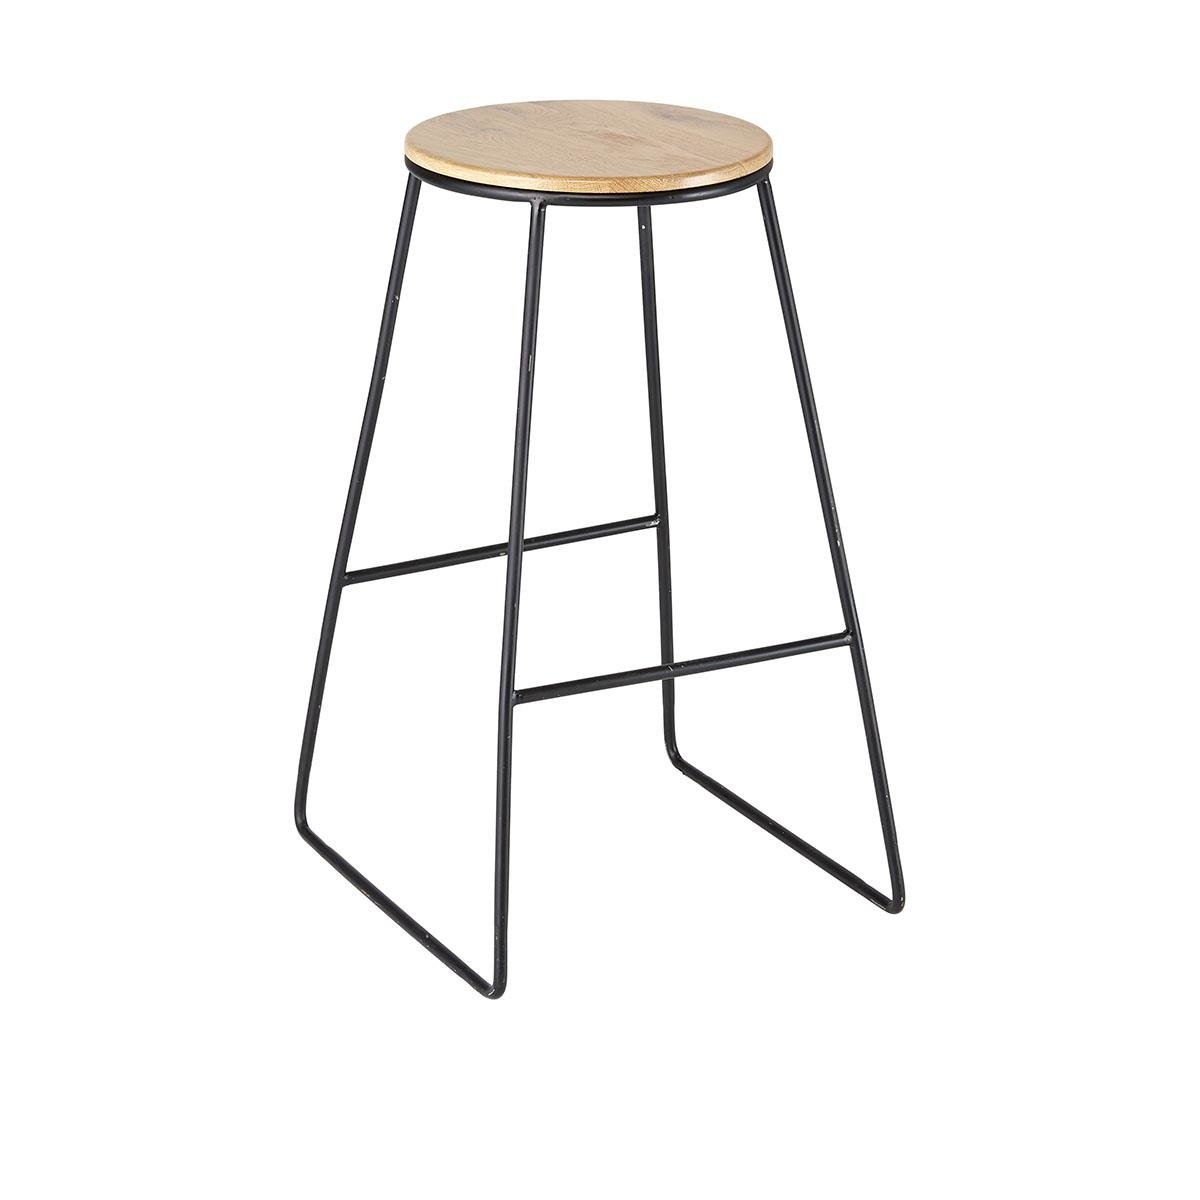 life store stool wux blck bar your design walnut black wal modern stools bs hend in or for interiors kitchen by online leather hendrix lea